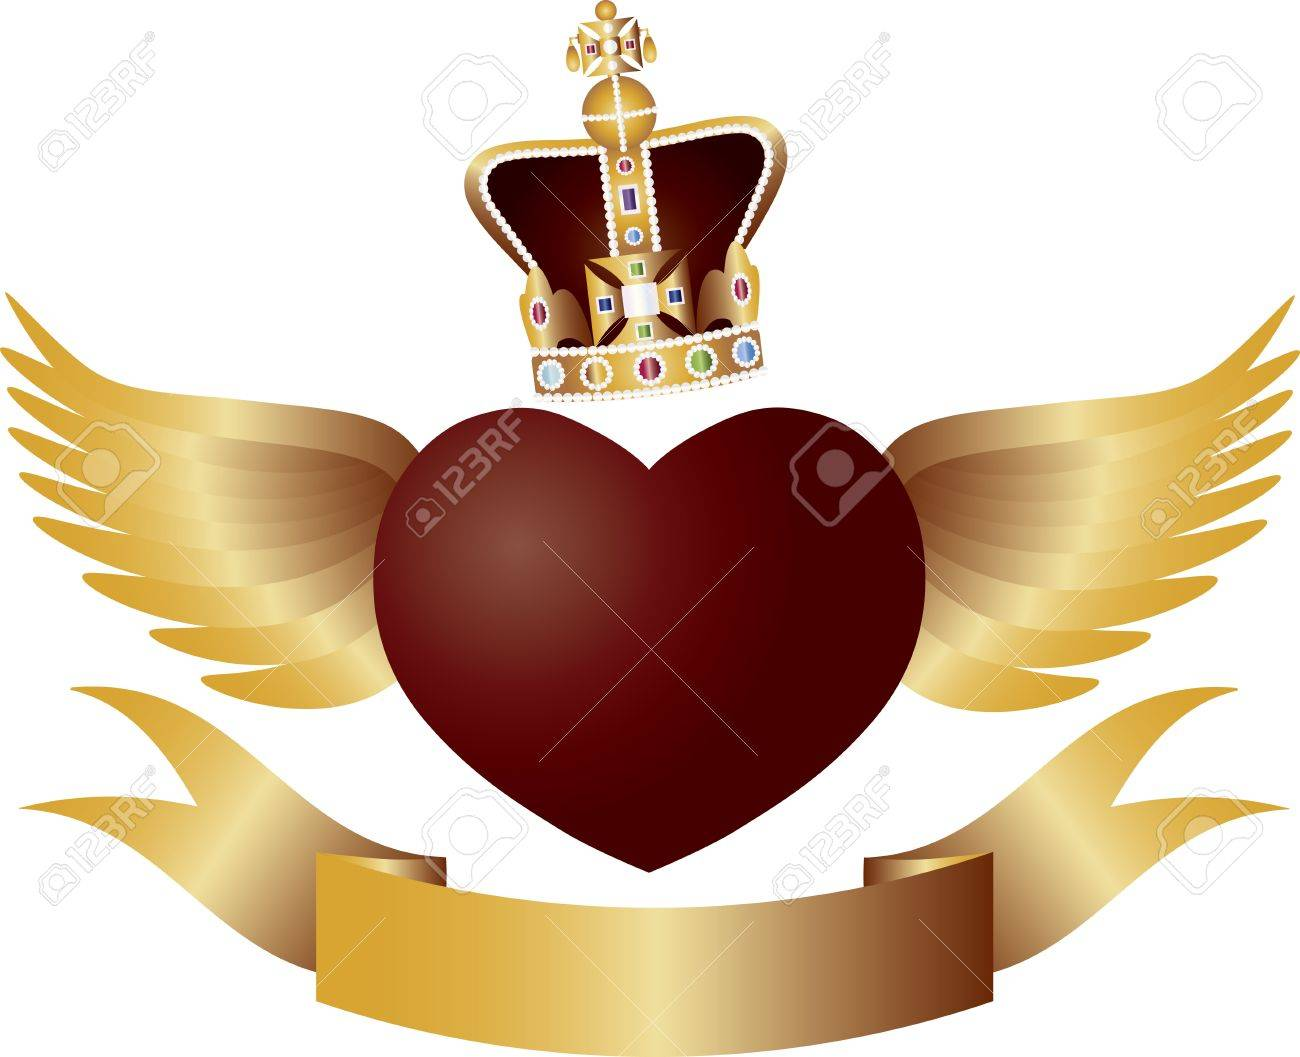 Flying Red Heart with Crown Jewels Wings and Banner Illustration Stock Vector - 13977886